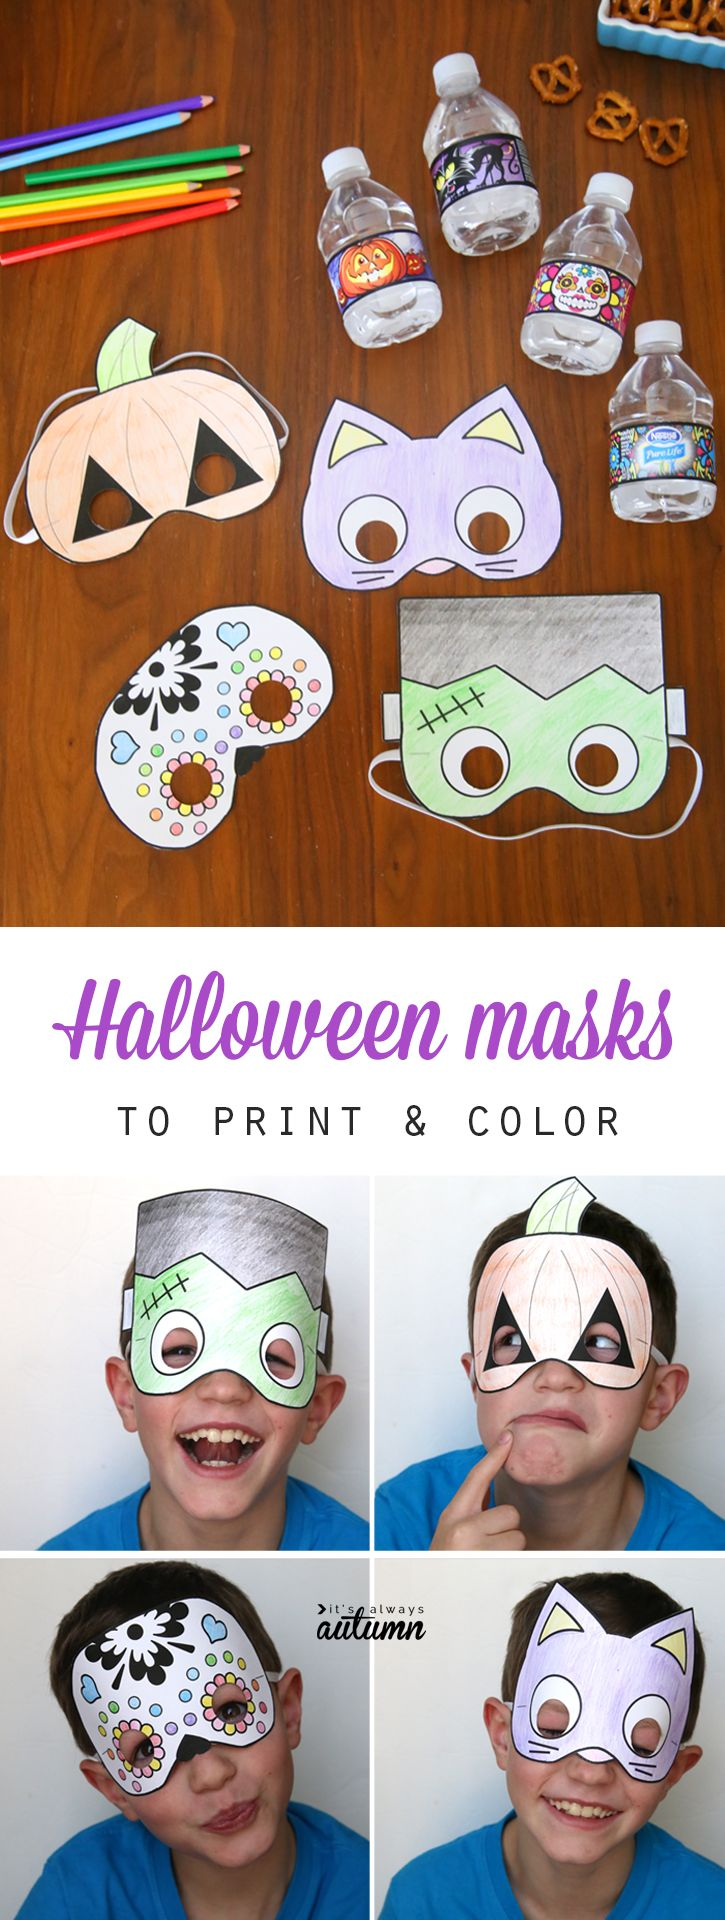 Best 25+ Halloween masks ideas on Pinterest | Masks for halloween ...